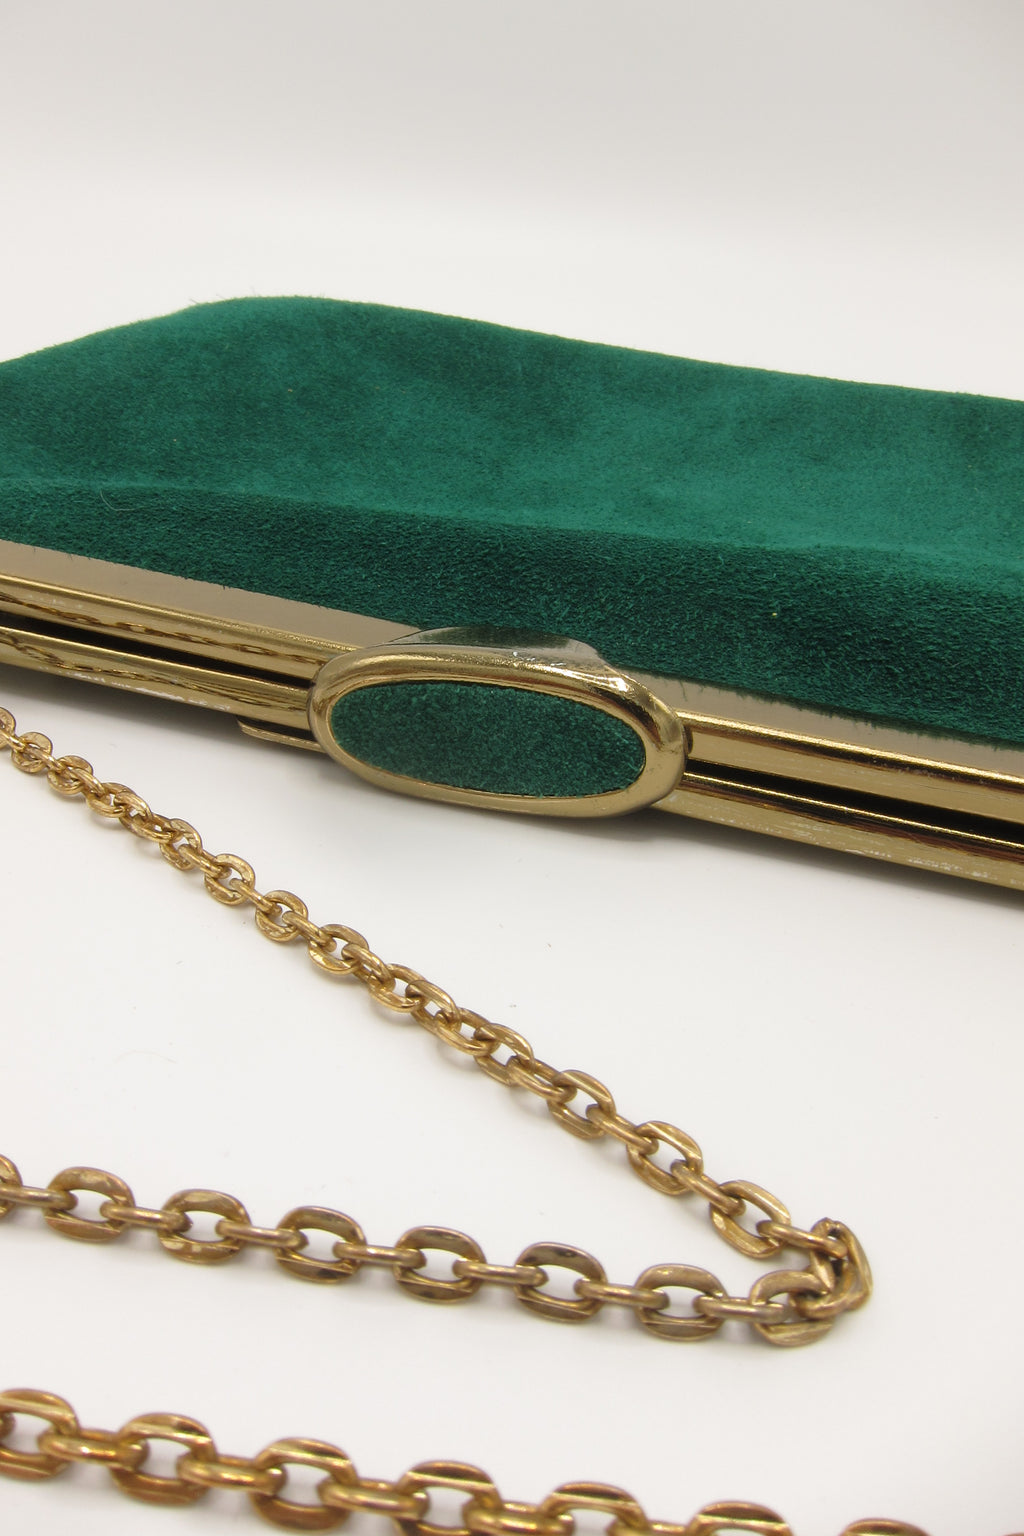 Vintage Green Suede Purse